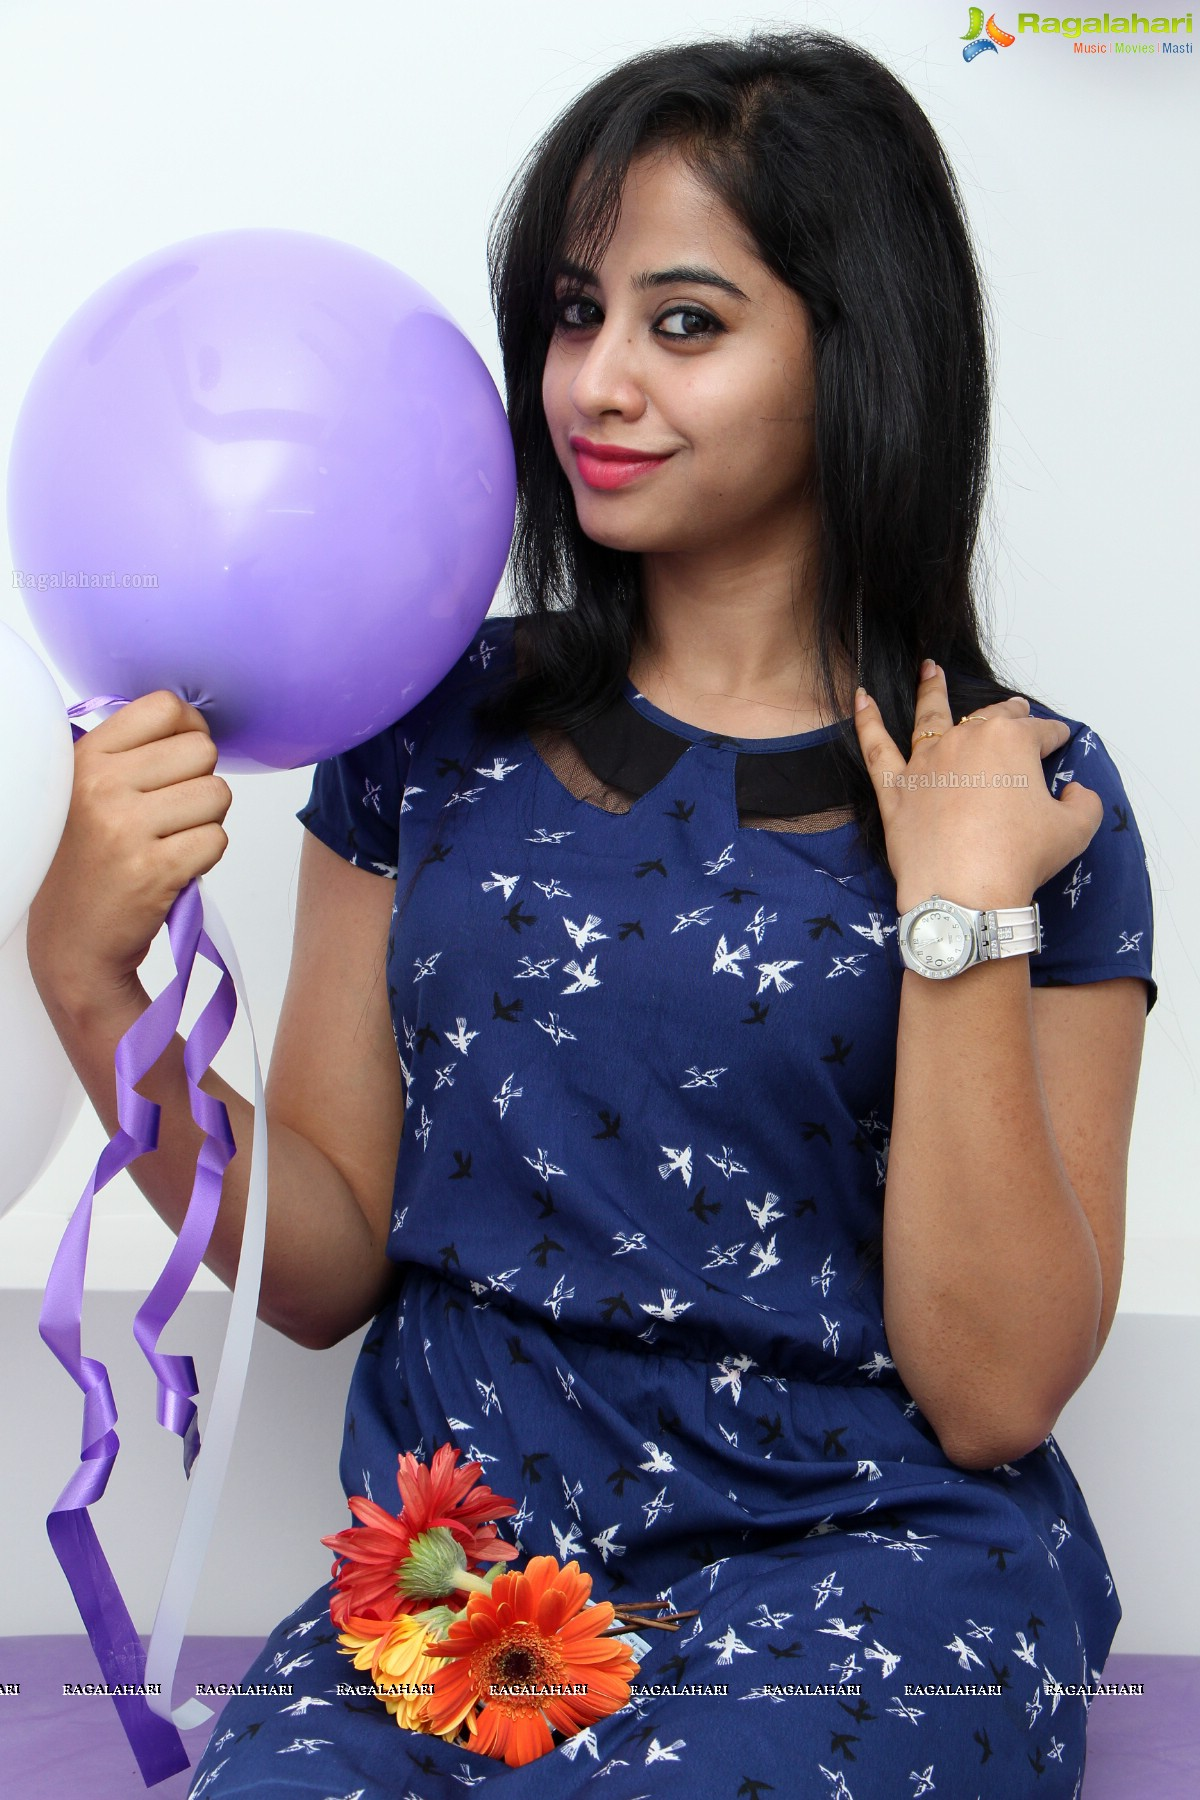 secunderabad girls Meet a girl, dating woman in secunderabad at quackquack — date single  women seeking men, dating girls secunderabad online at free dating site in.